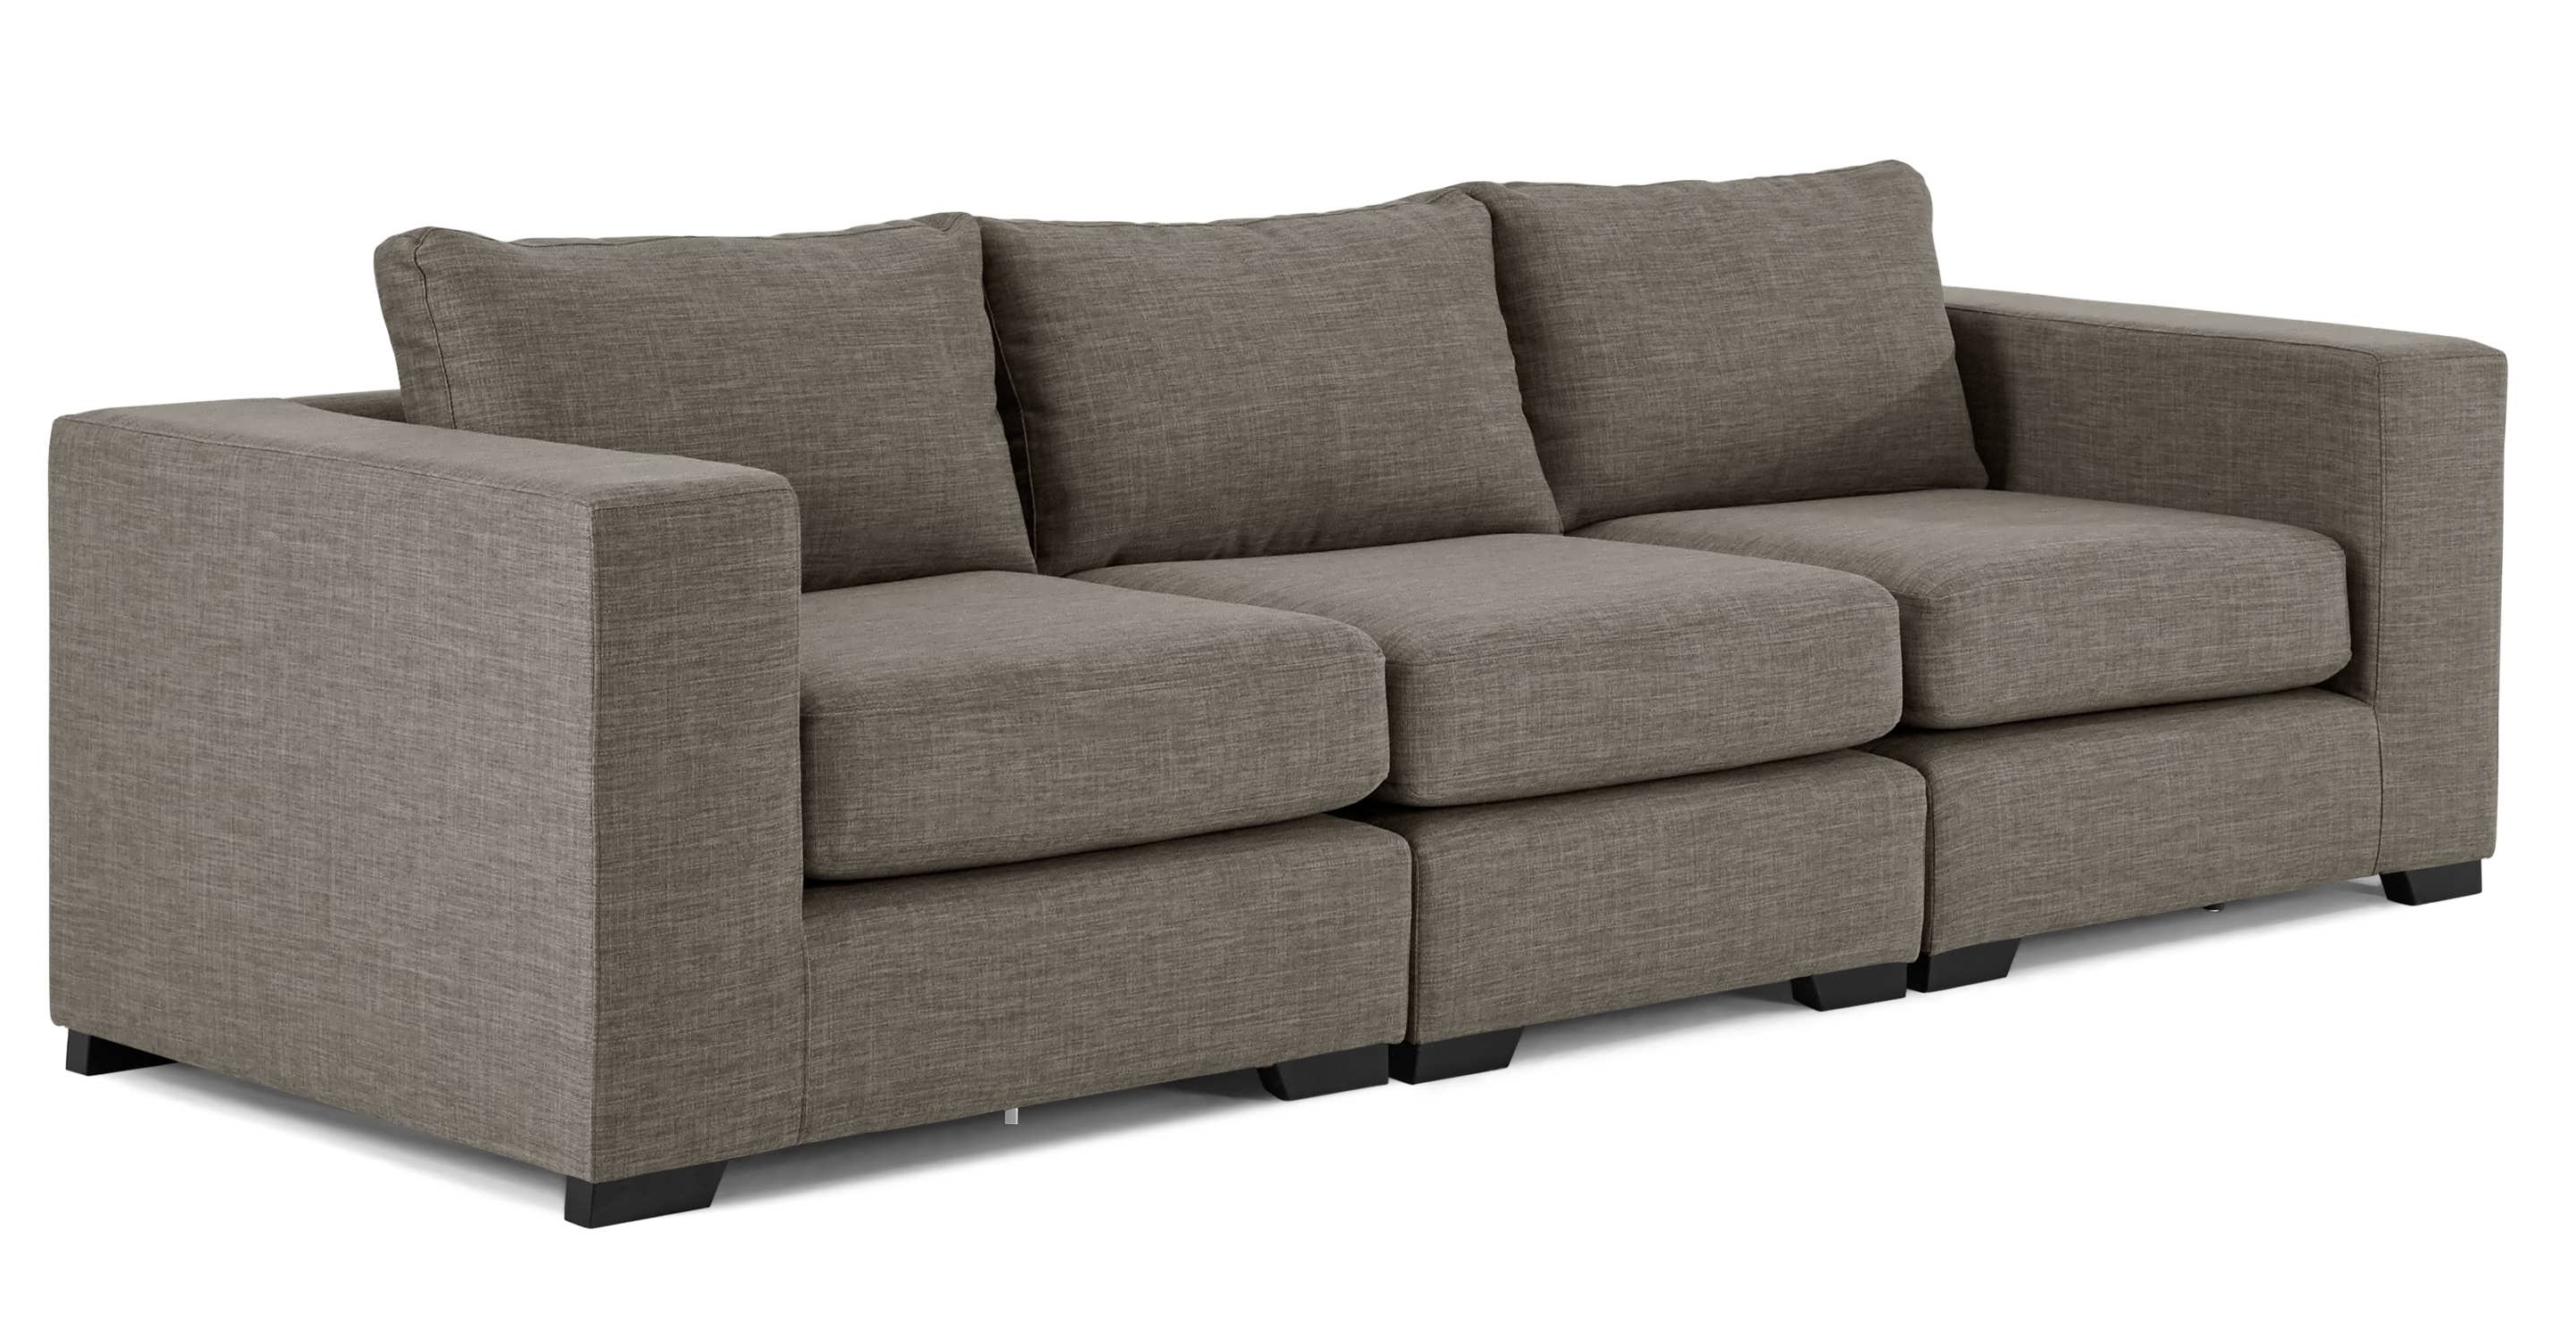 Sofa : Sectionals For Sale Chaise Sofa Leather Sectional Sofa Grey For Widely Used Chaise Sofa Sectionals (View 14 of 15)